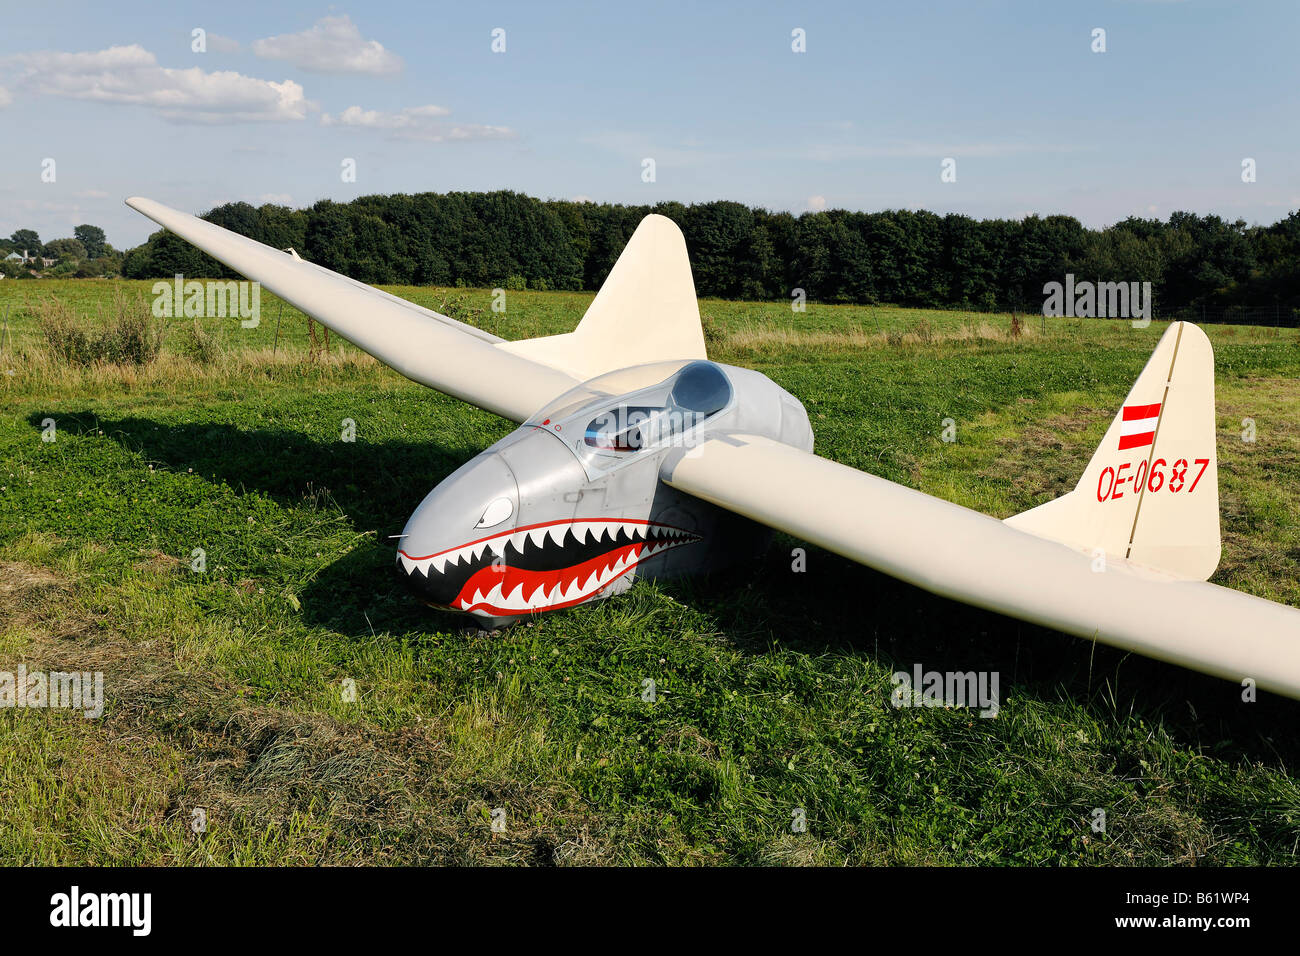 Original glider, flying wing without fuselage, cabin painted with a shark's mouth, Glider Airport, Aero Club - Stock Image